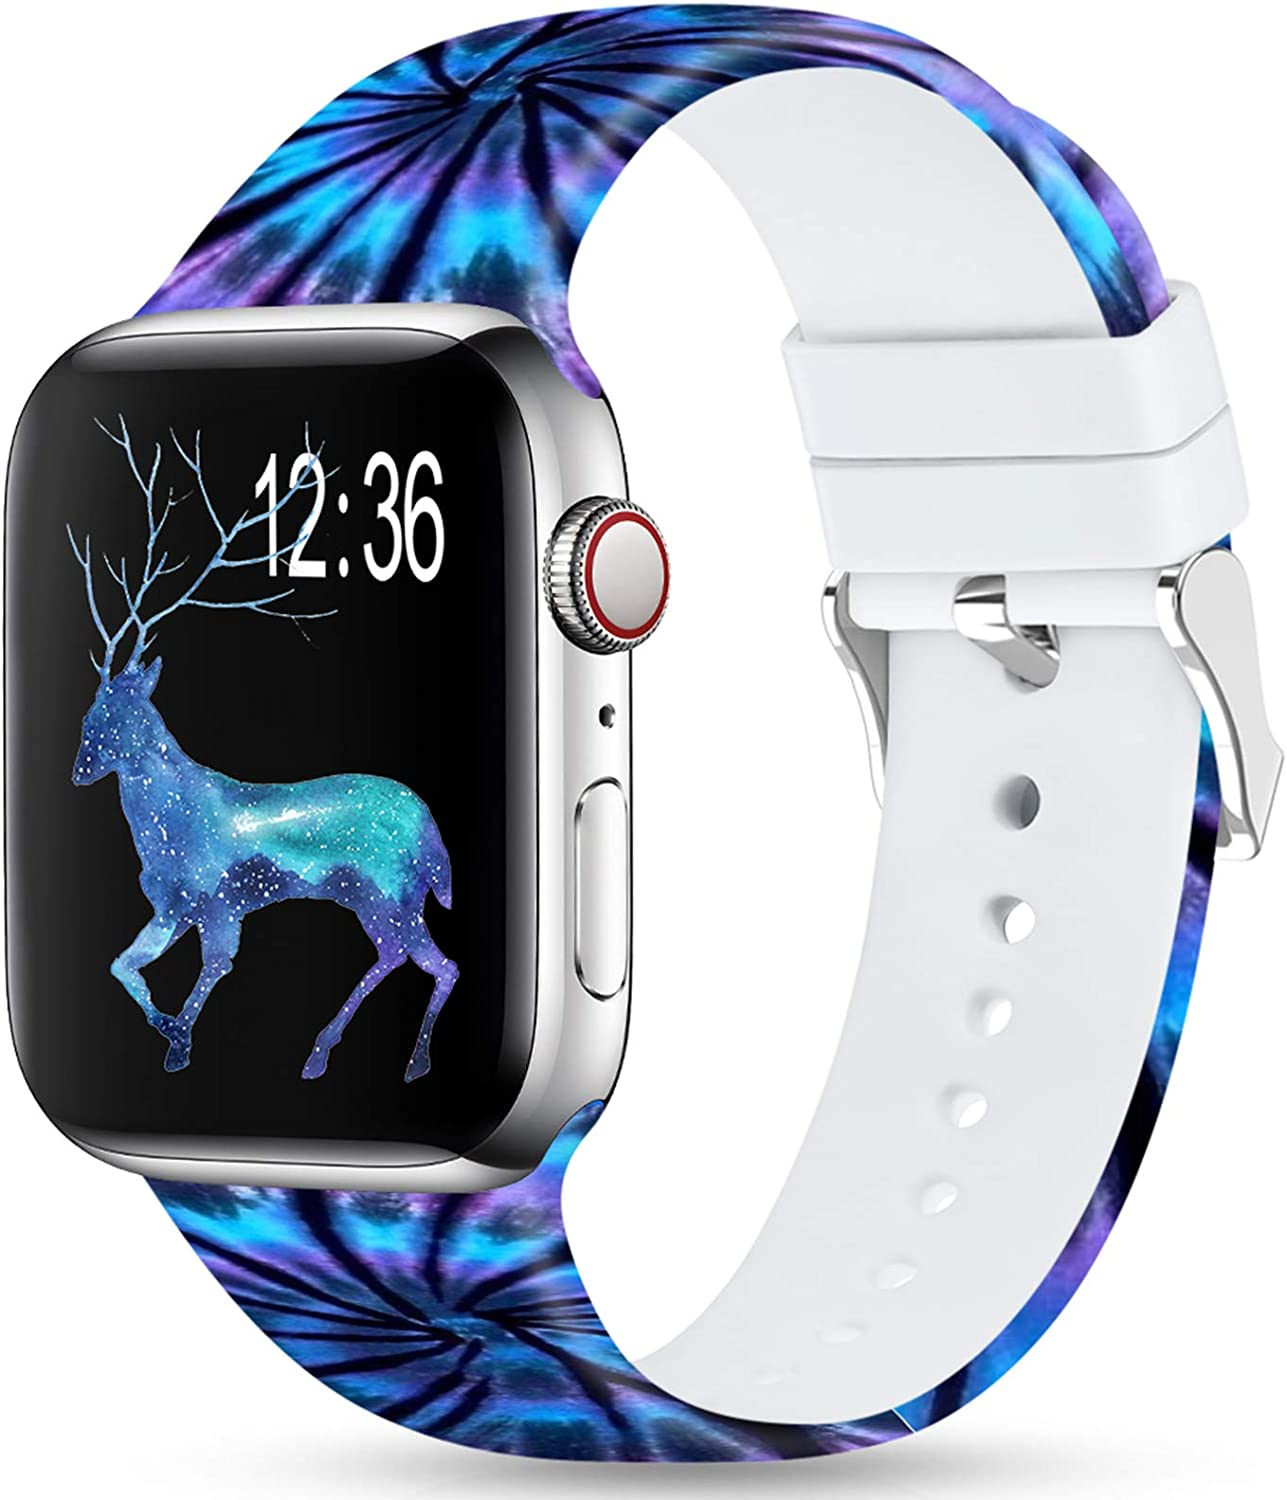 Merlion Compatible With Apple Watch Band 38mm 42mm 40mm 44mm For Women/Men,Silicone Fadeless Pattern Printed Replacement floral Bands for iWatch Series 4/3/2/1 (Mist, 42MM/44MM)